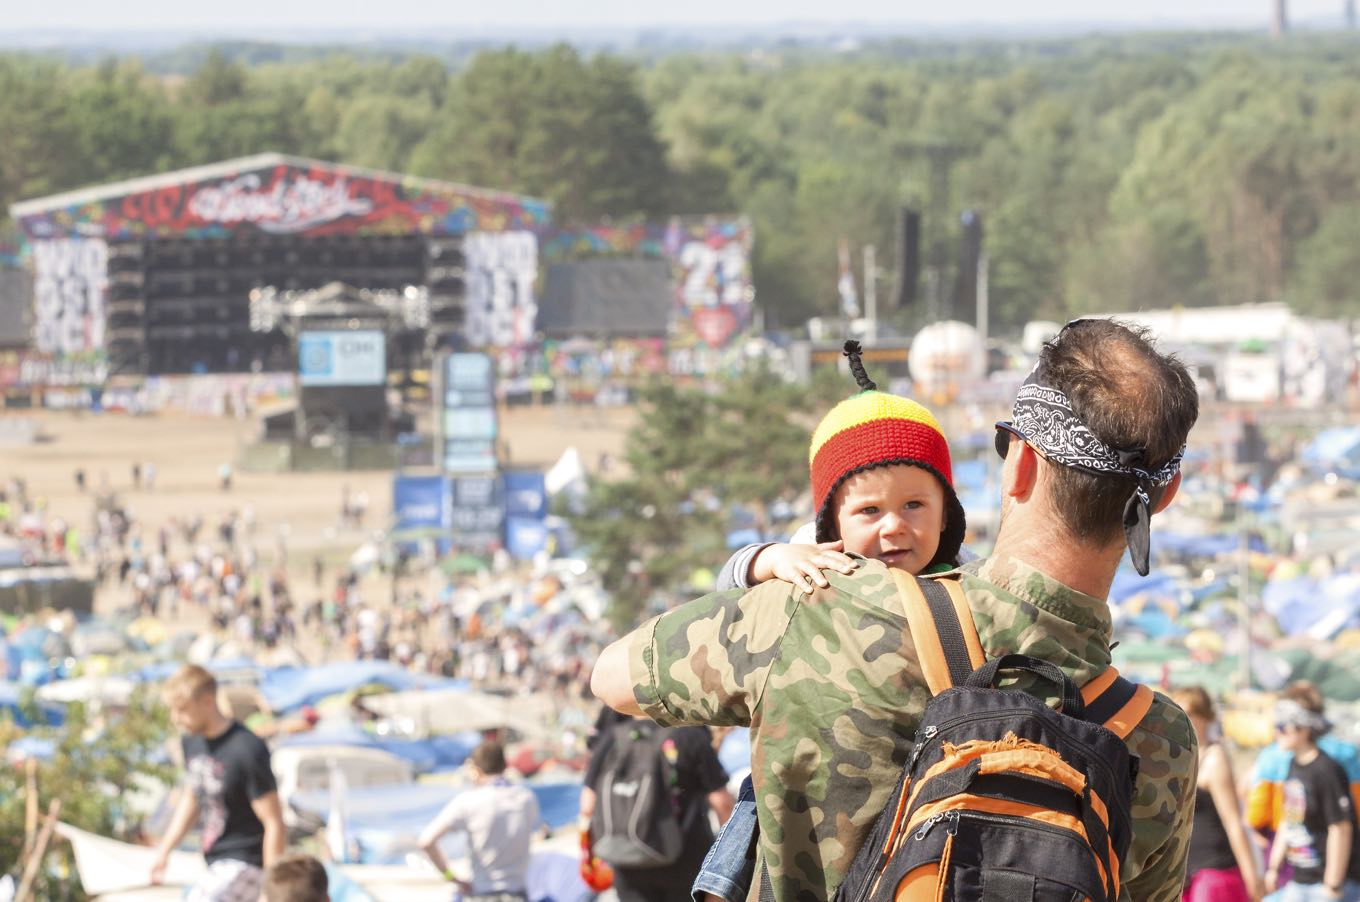 Essential Live Event Activities for Kids & Families